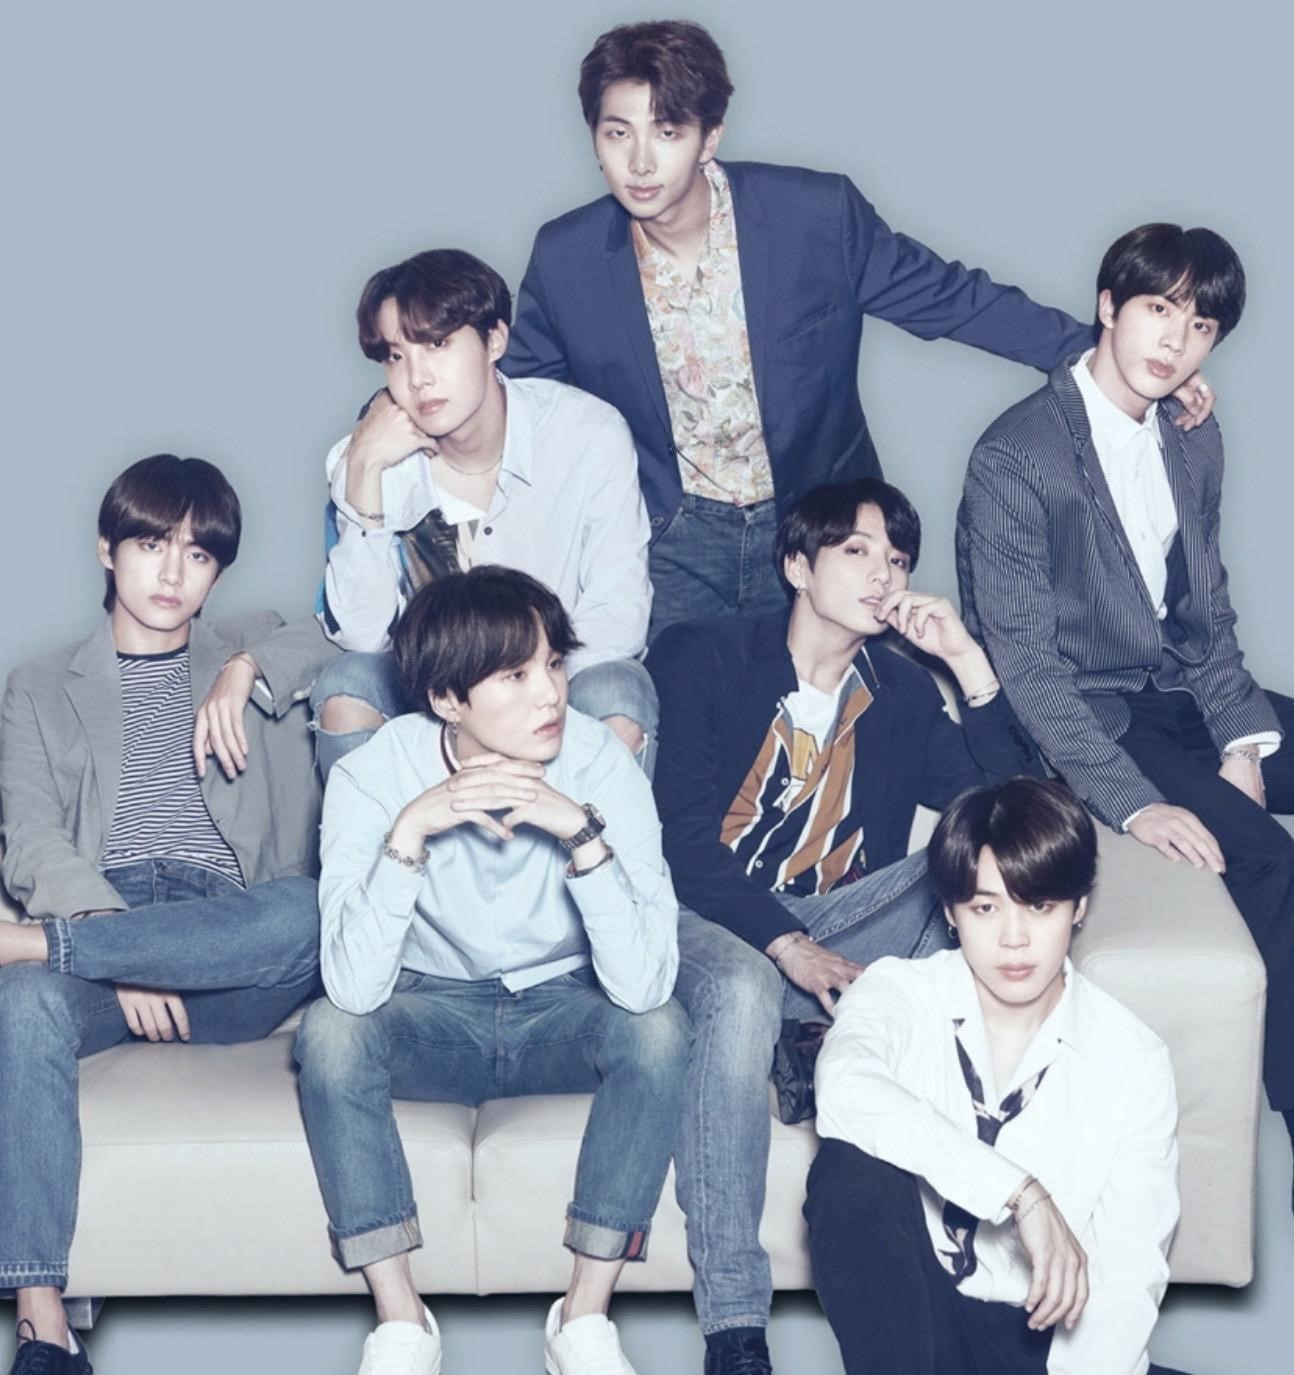 BTS sells out Wembley Stadium in 90 minutes!